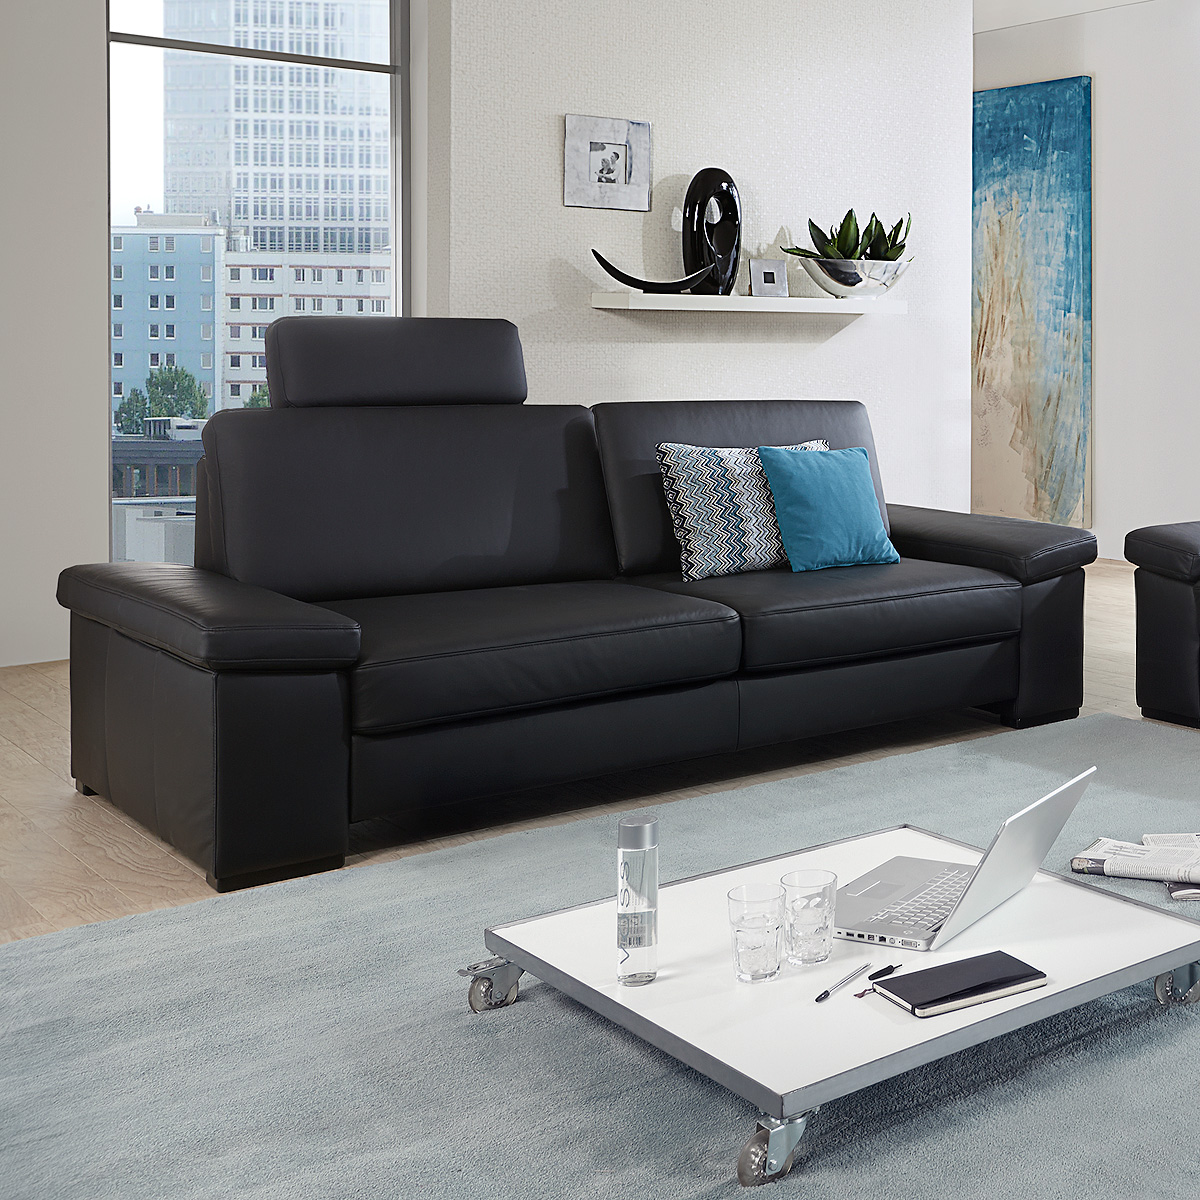 sofa 3er puzzle 3 sitzer polsterm bel in echt leder schwarz 228 cm ebay. Black Bedroom Furniture Sets. Home Design Ideas